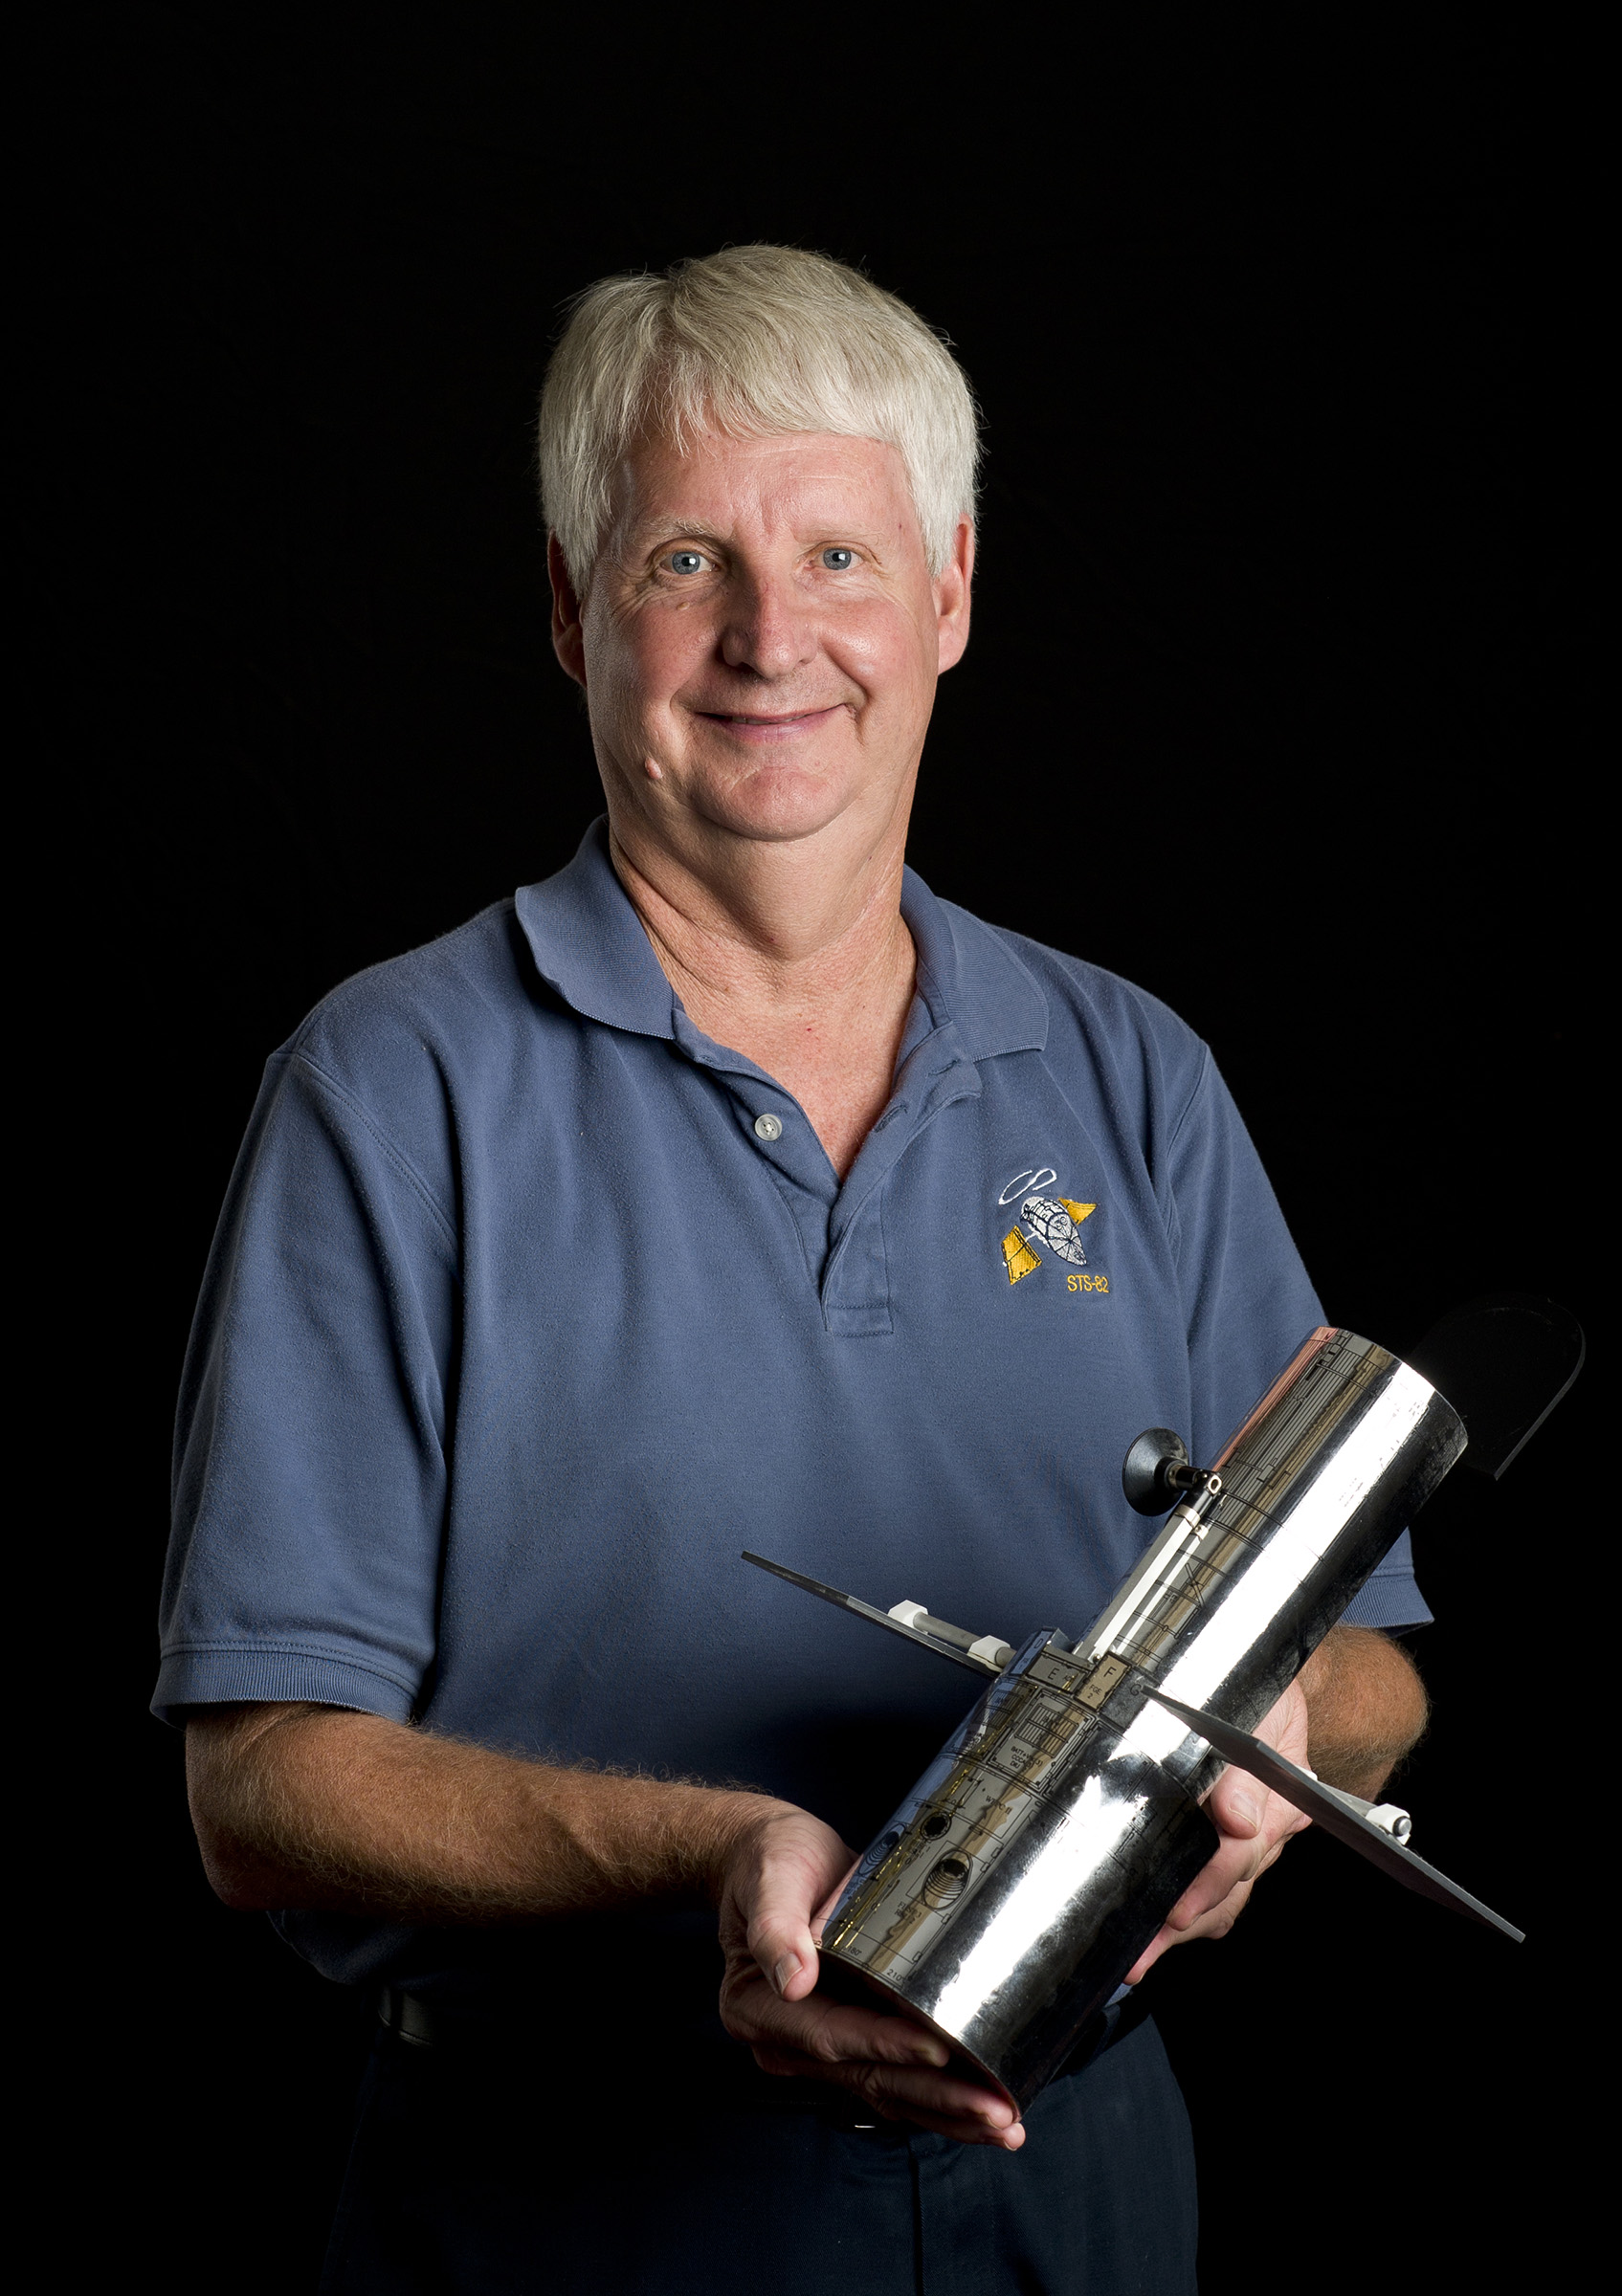 Retired NASA astronauts and University of Kansas alumni Joe Engle and Steven Hawley (pictured) will be grand marshals of the KU Homecoming Parade on Friday, October 6, in downtown Lawrence. A meet and greet with Kansas Athletics will precede the parade at South Park.